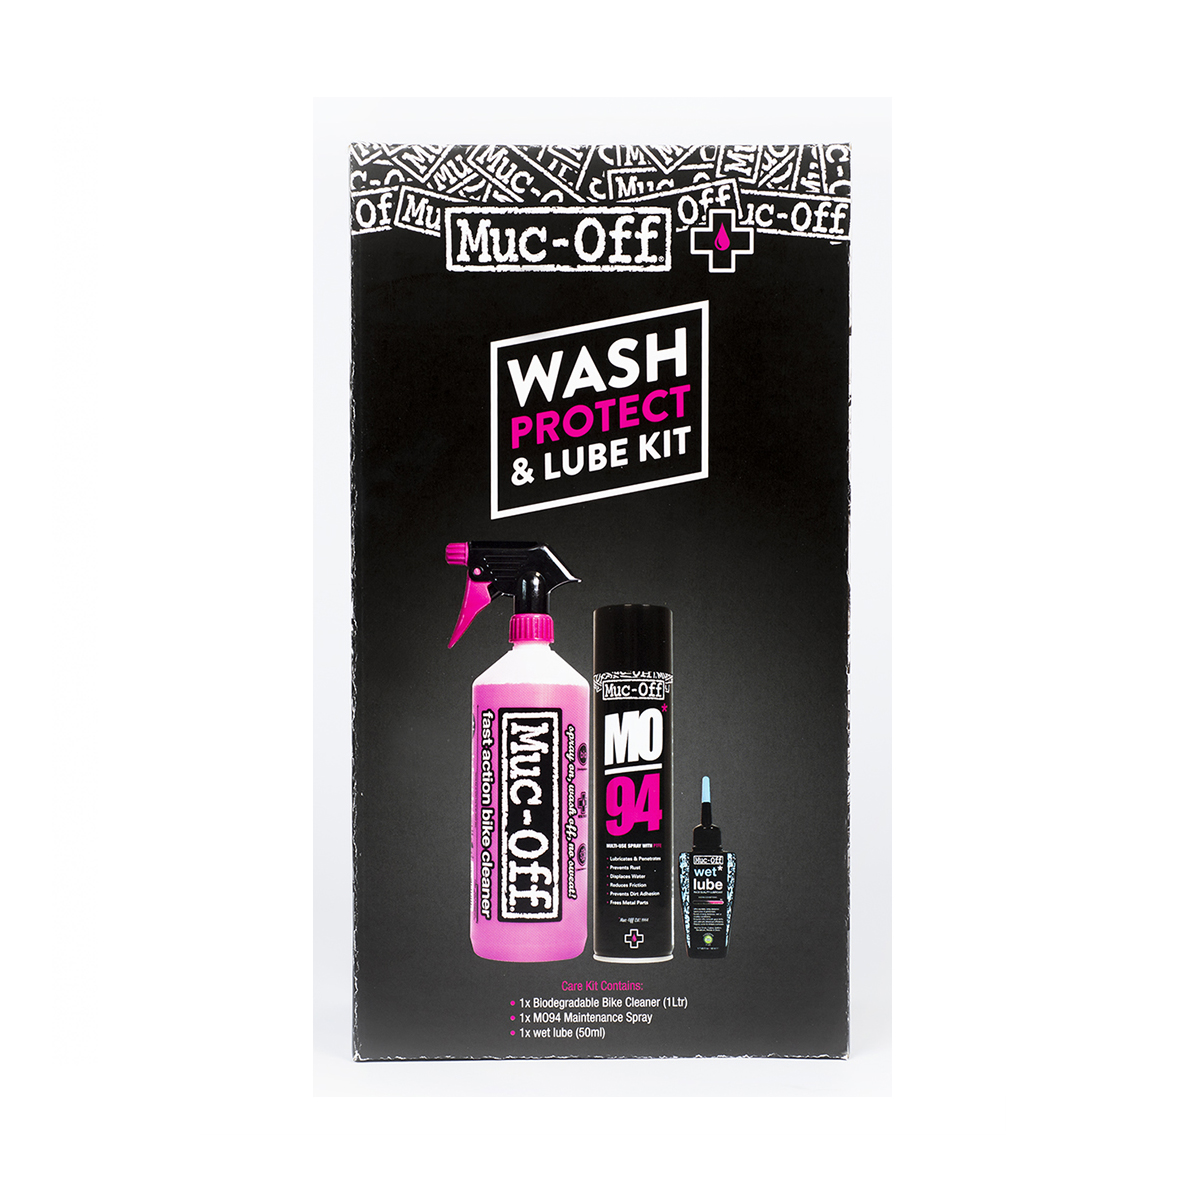 Muc off Cleaning Kit : Wash Protect Lube